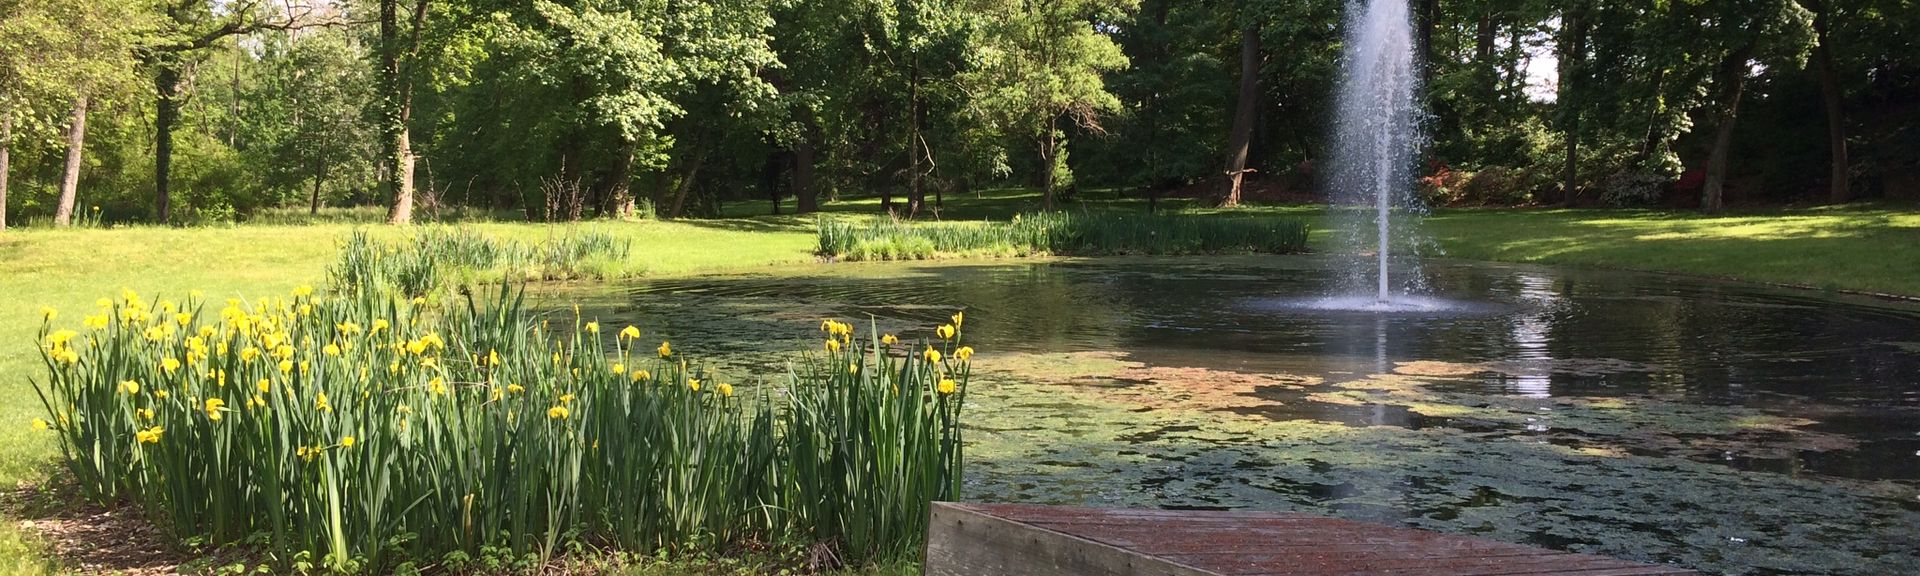 Wilmer Park, Chestertown, MD, USA